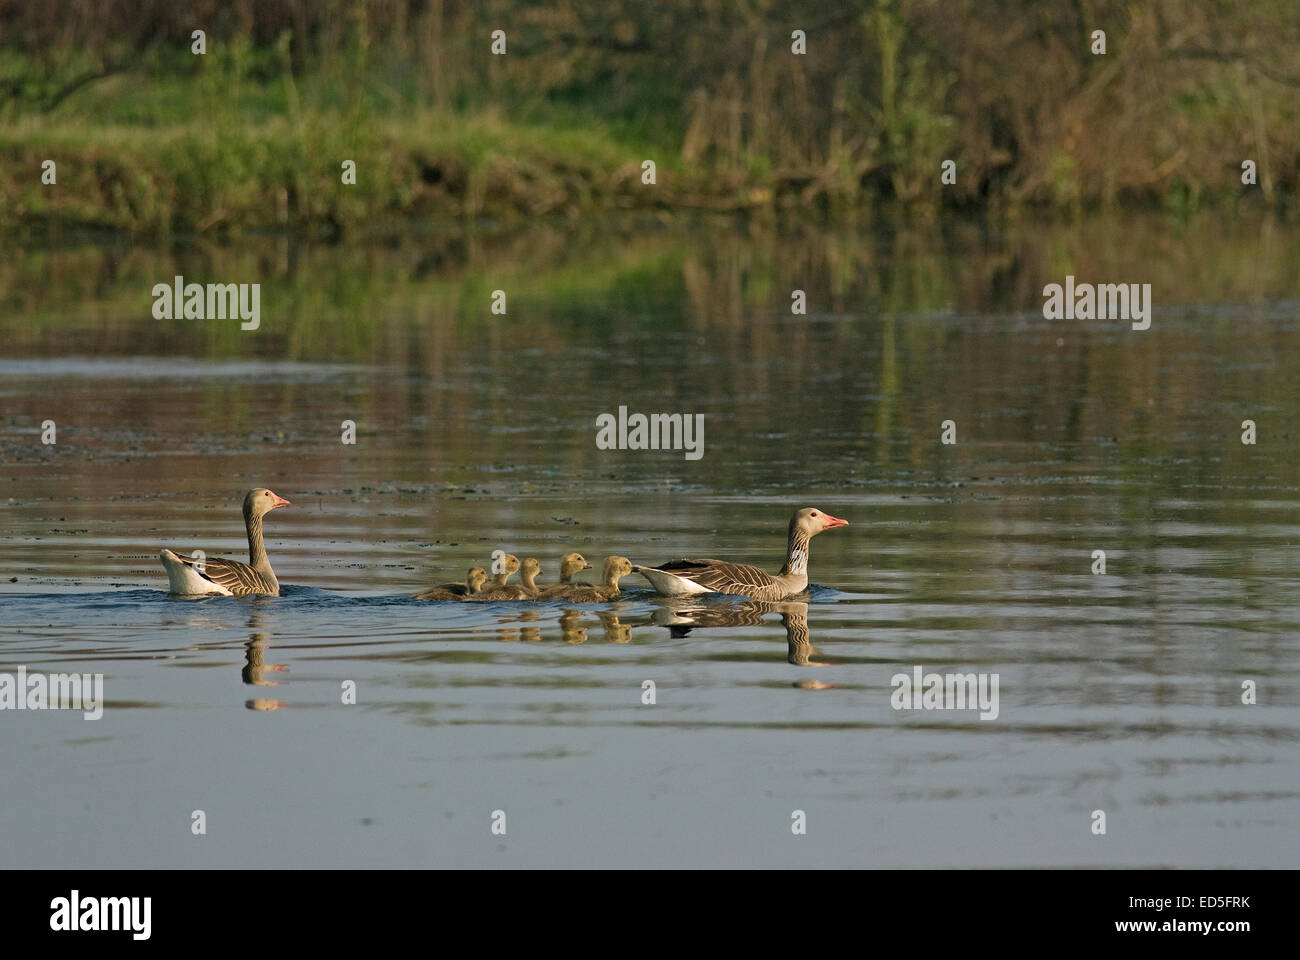 Couple of Greylag gooses (Anser anser) with fledglings, Danube delta, Romania, Europa - Stock Image